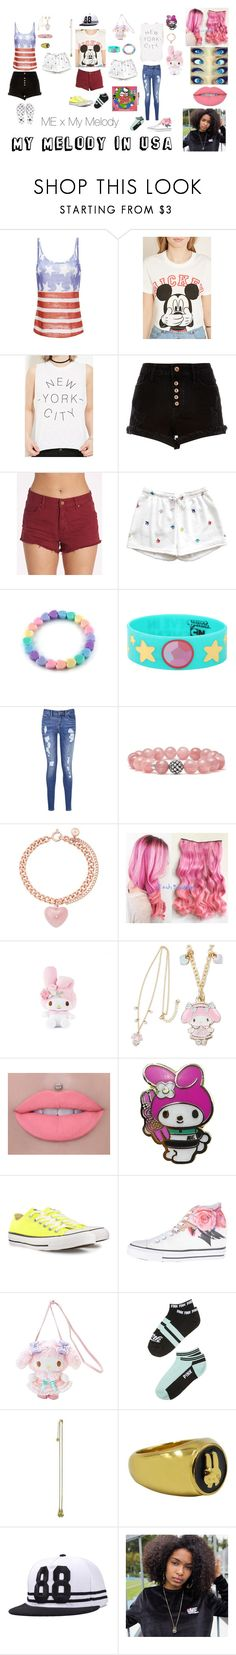 """My Melody in USA"" by teanster123 ❤ liked on Polyvore featuring Forever 21, River Island, Billabong, Cartoon Network, Tommy Hilfiger, Lagos, Michael Kors, Converse and country"